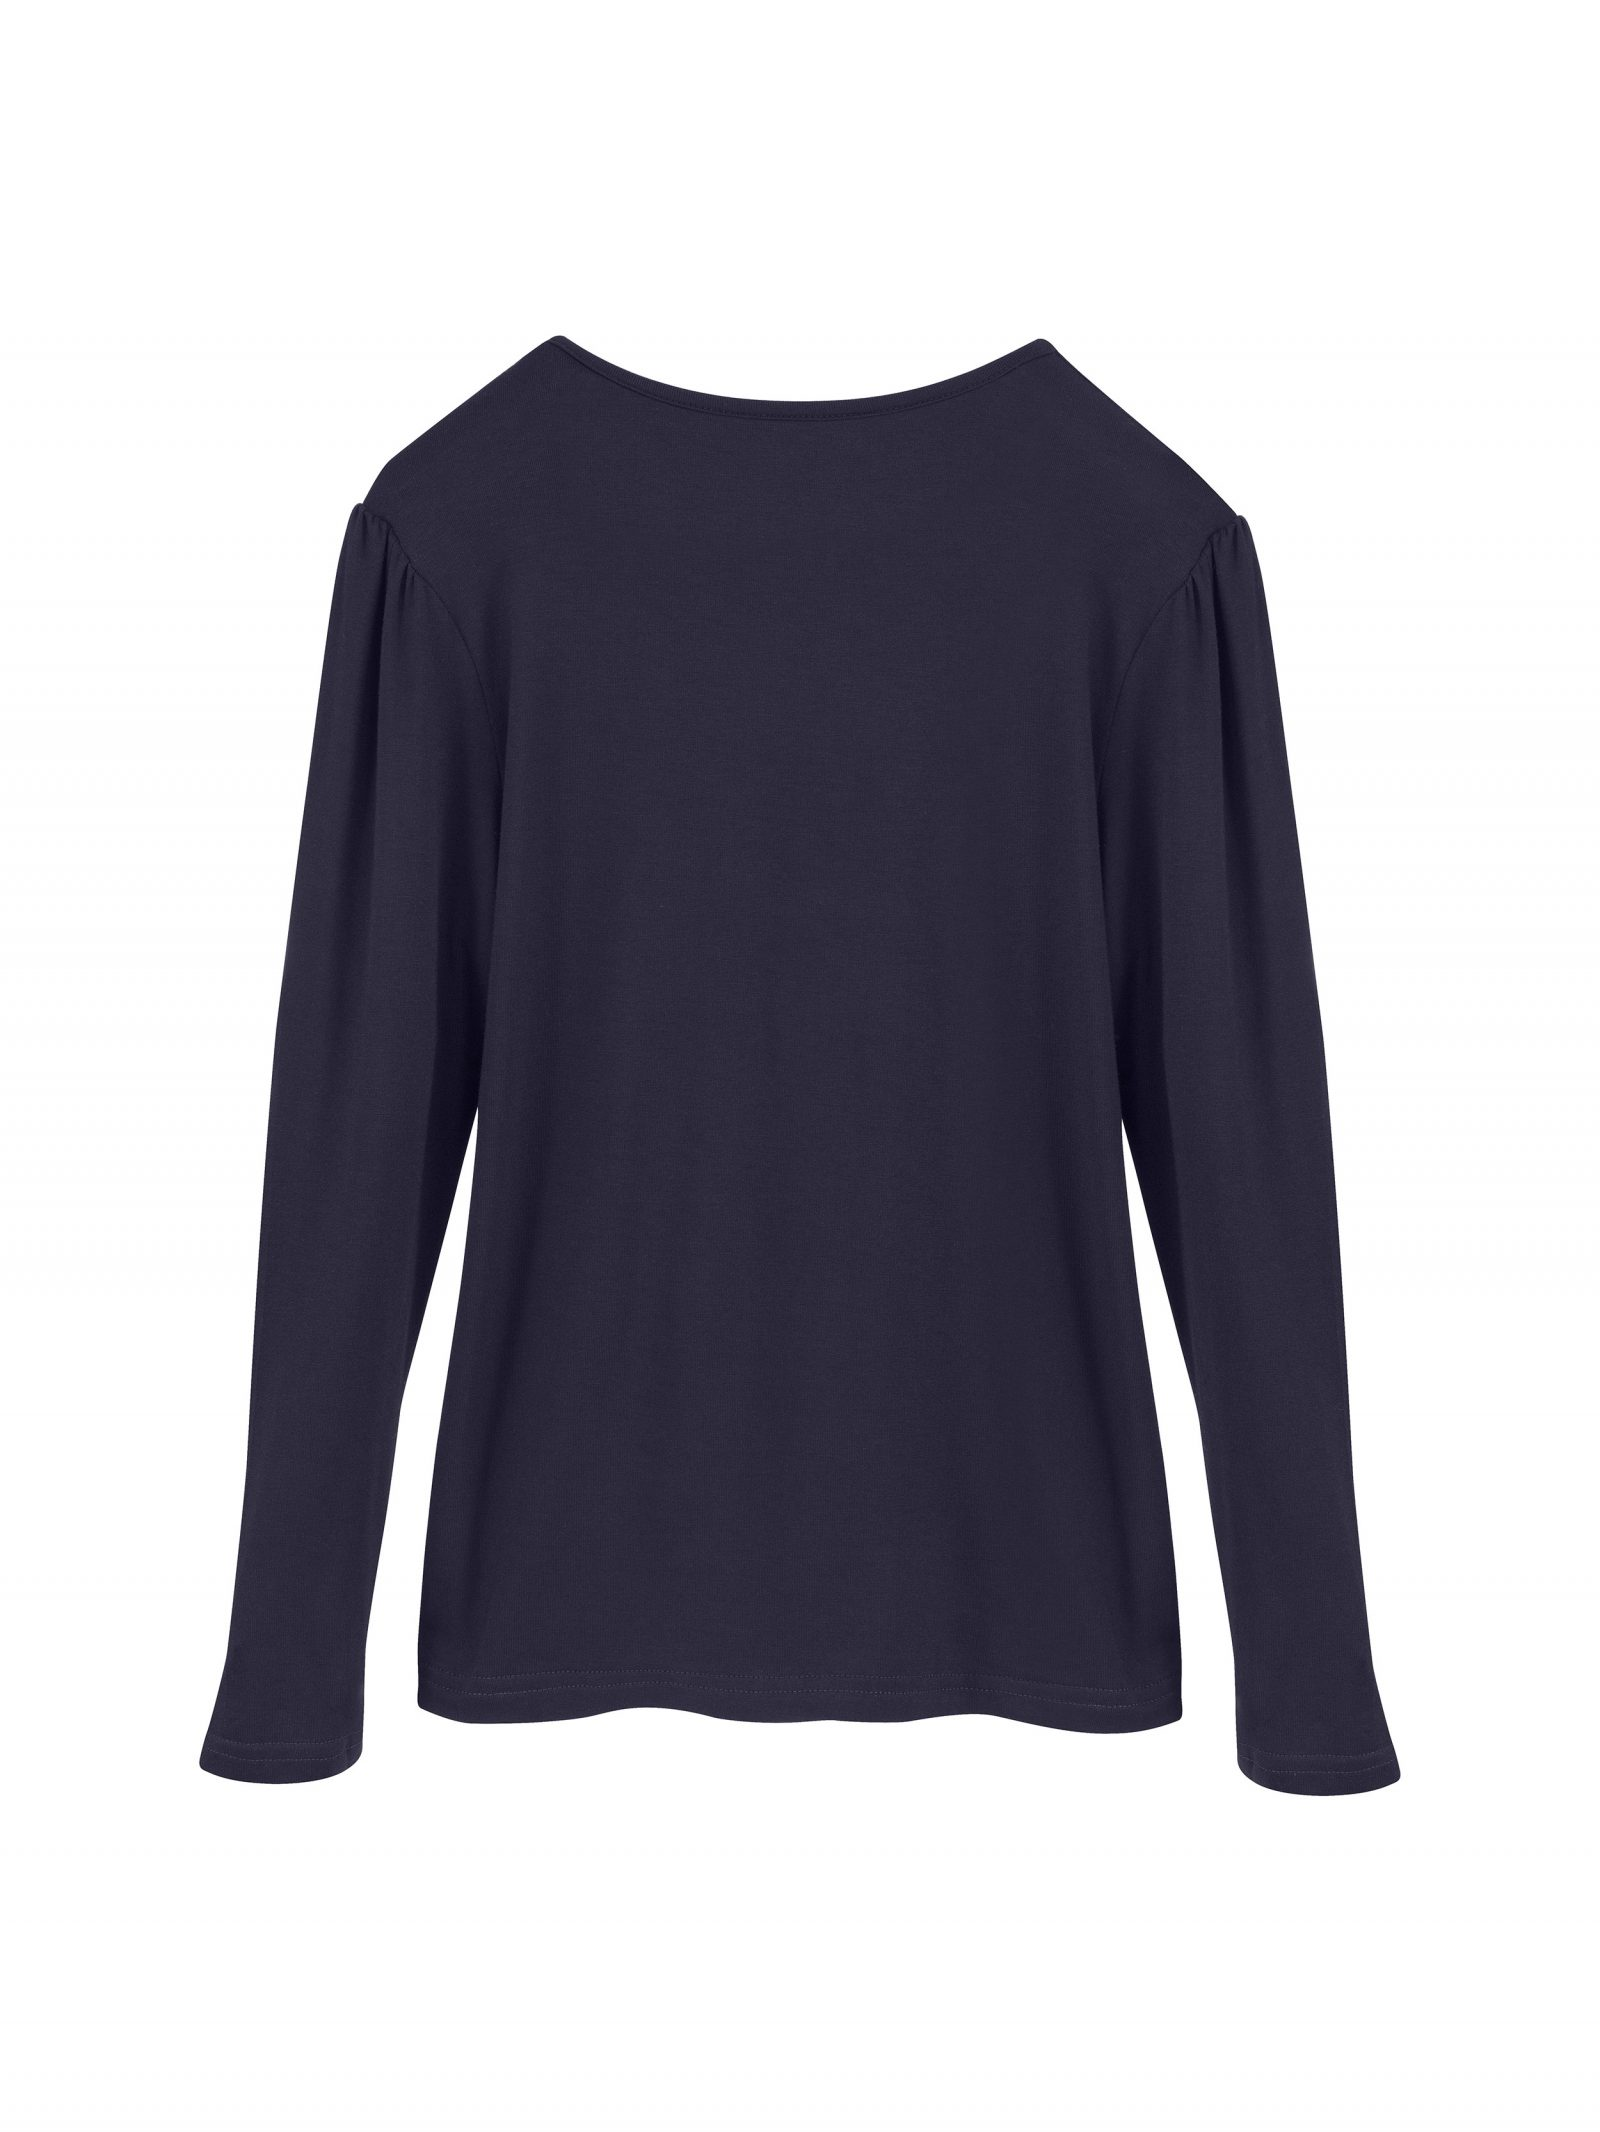 Kate Long Sleeve T Shirt in Navy - Back